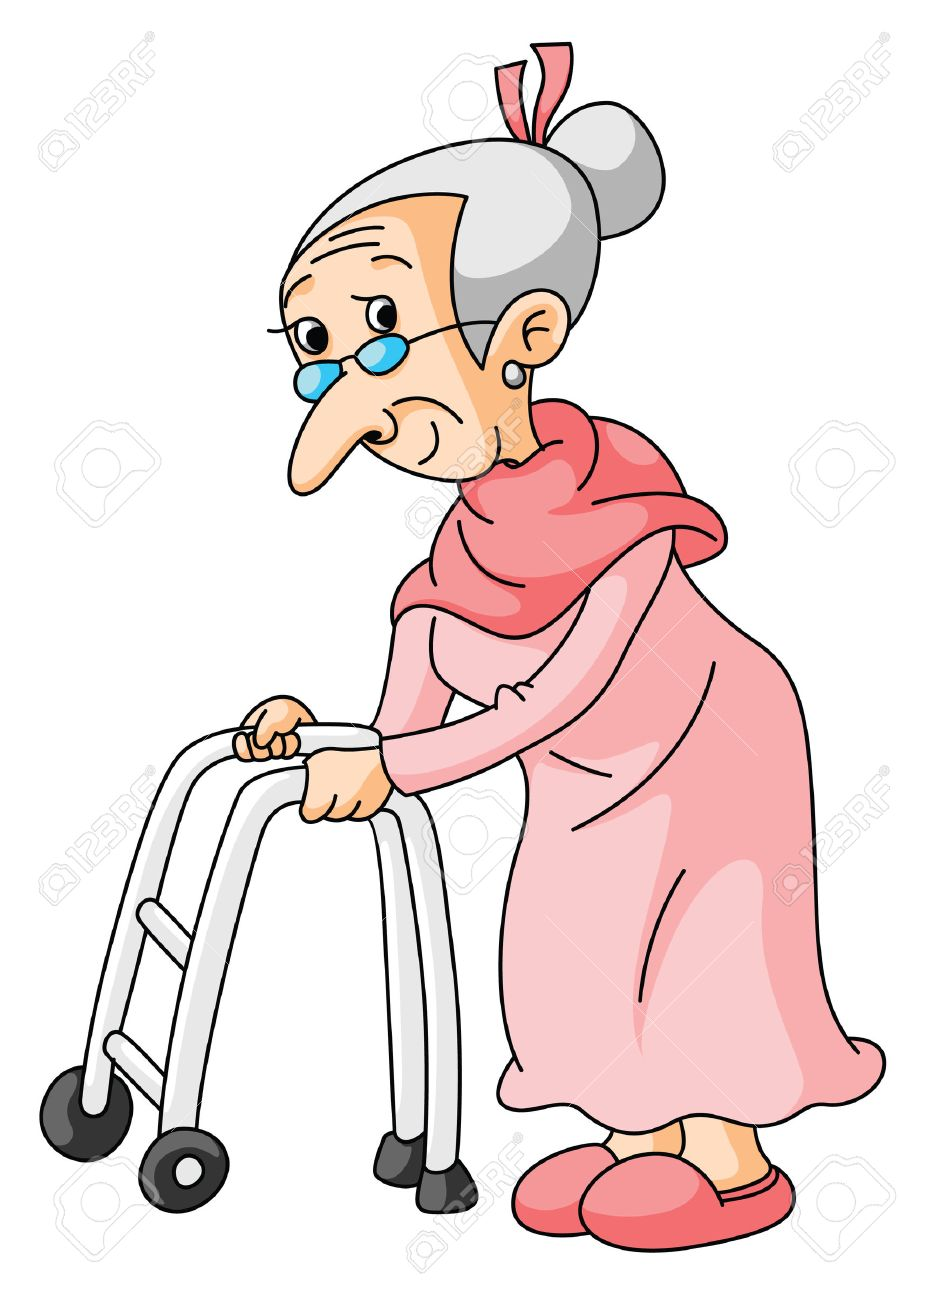 old woman royalty free cliparts vectors and stock illustration rh 123rf com funny old woman clipart old woman face clipart